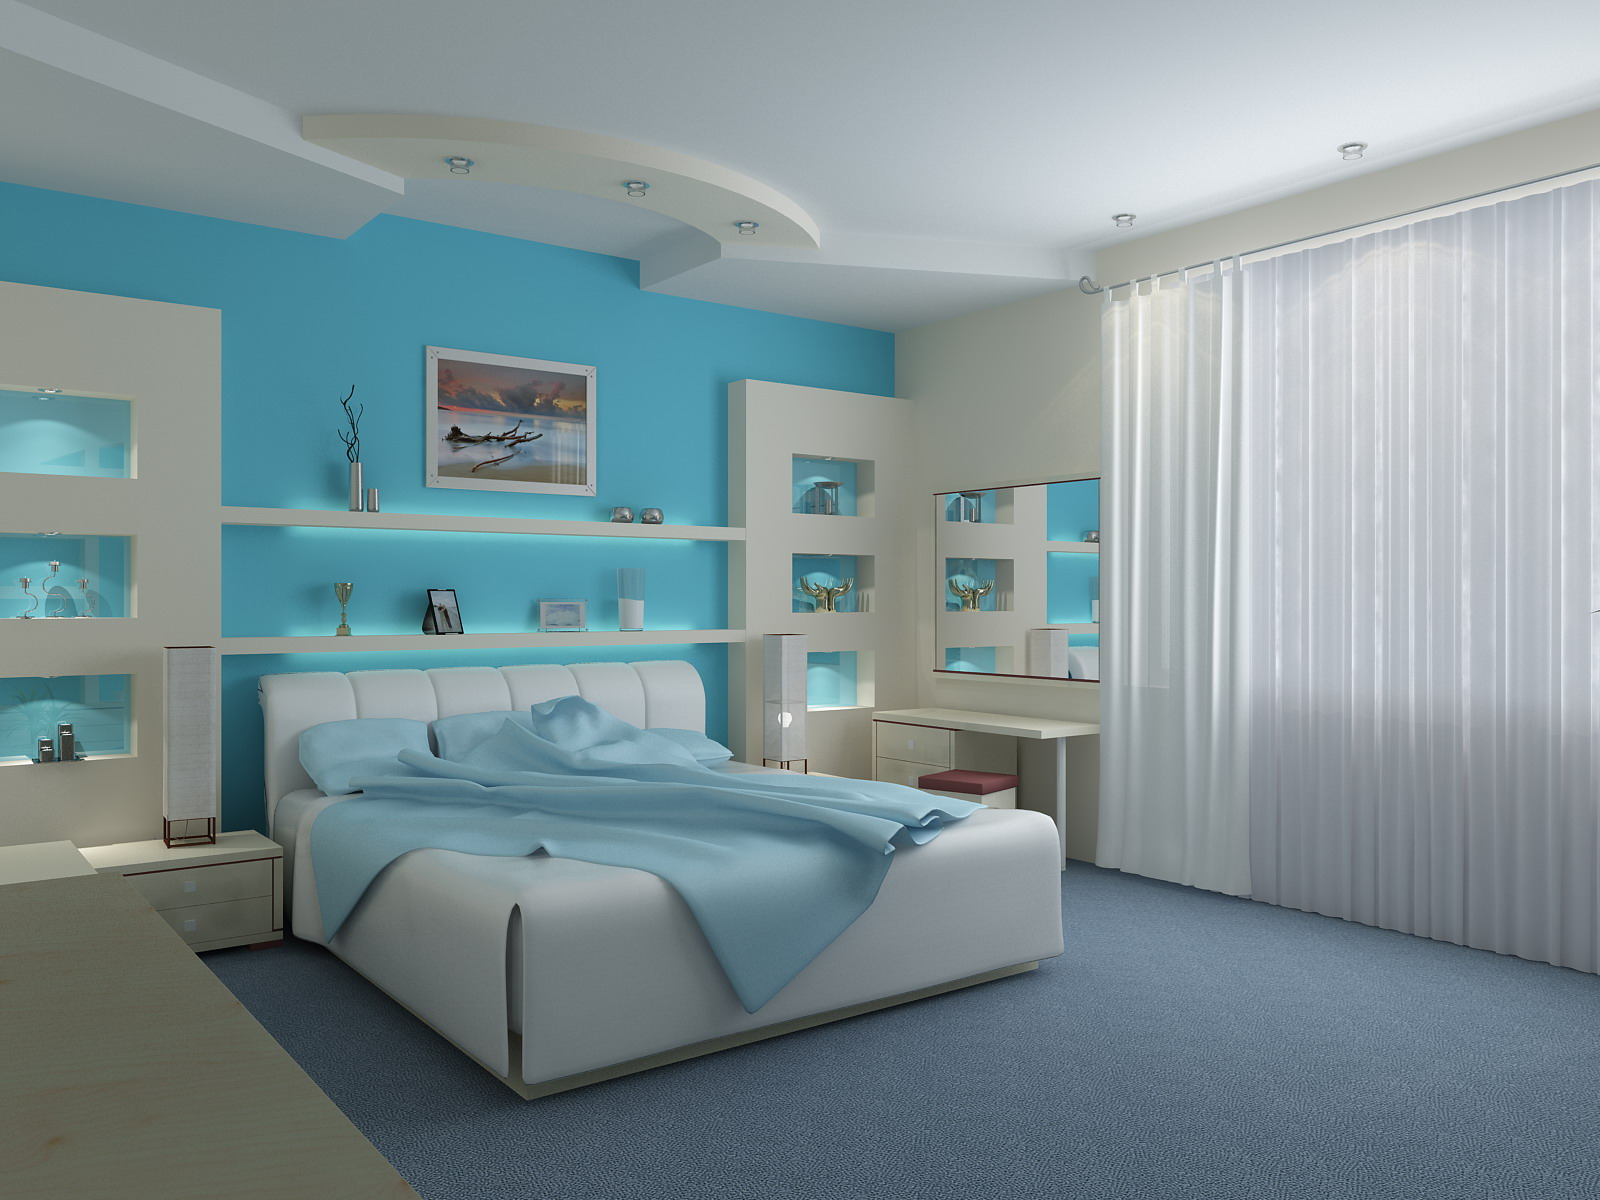 Bedroom pictures popular interior house ideas for Teenage bedroom designs ideas